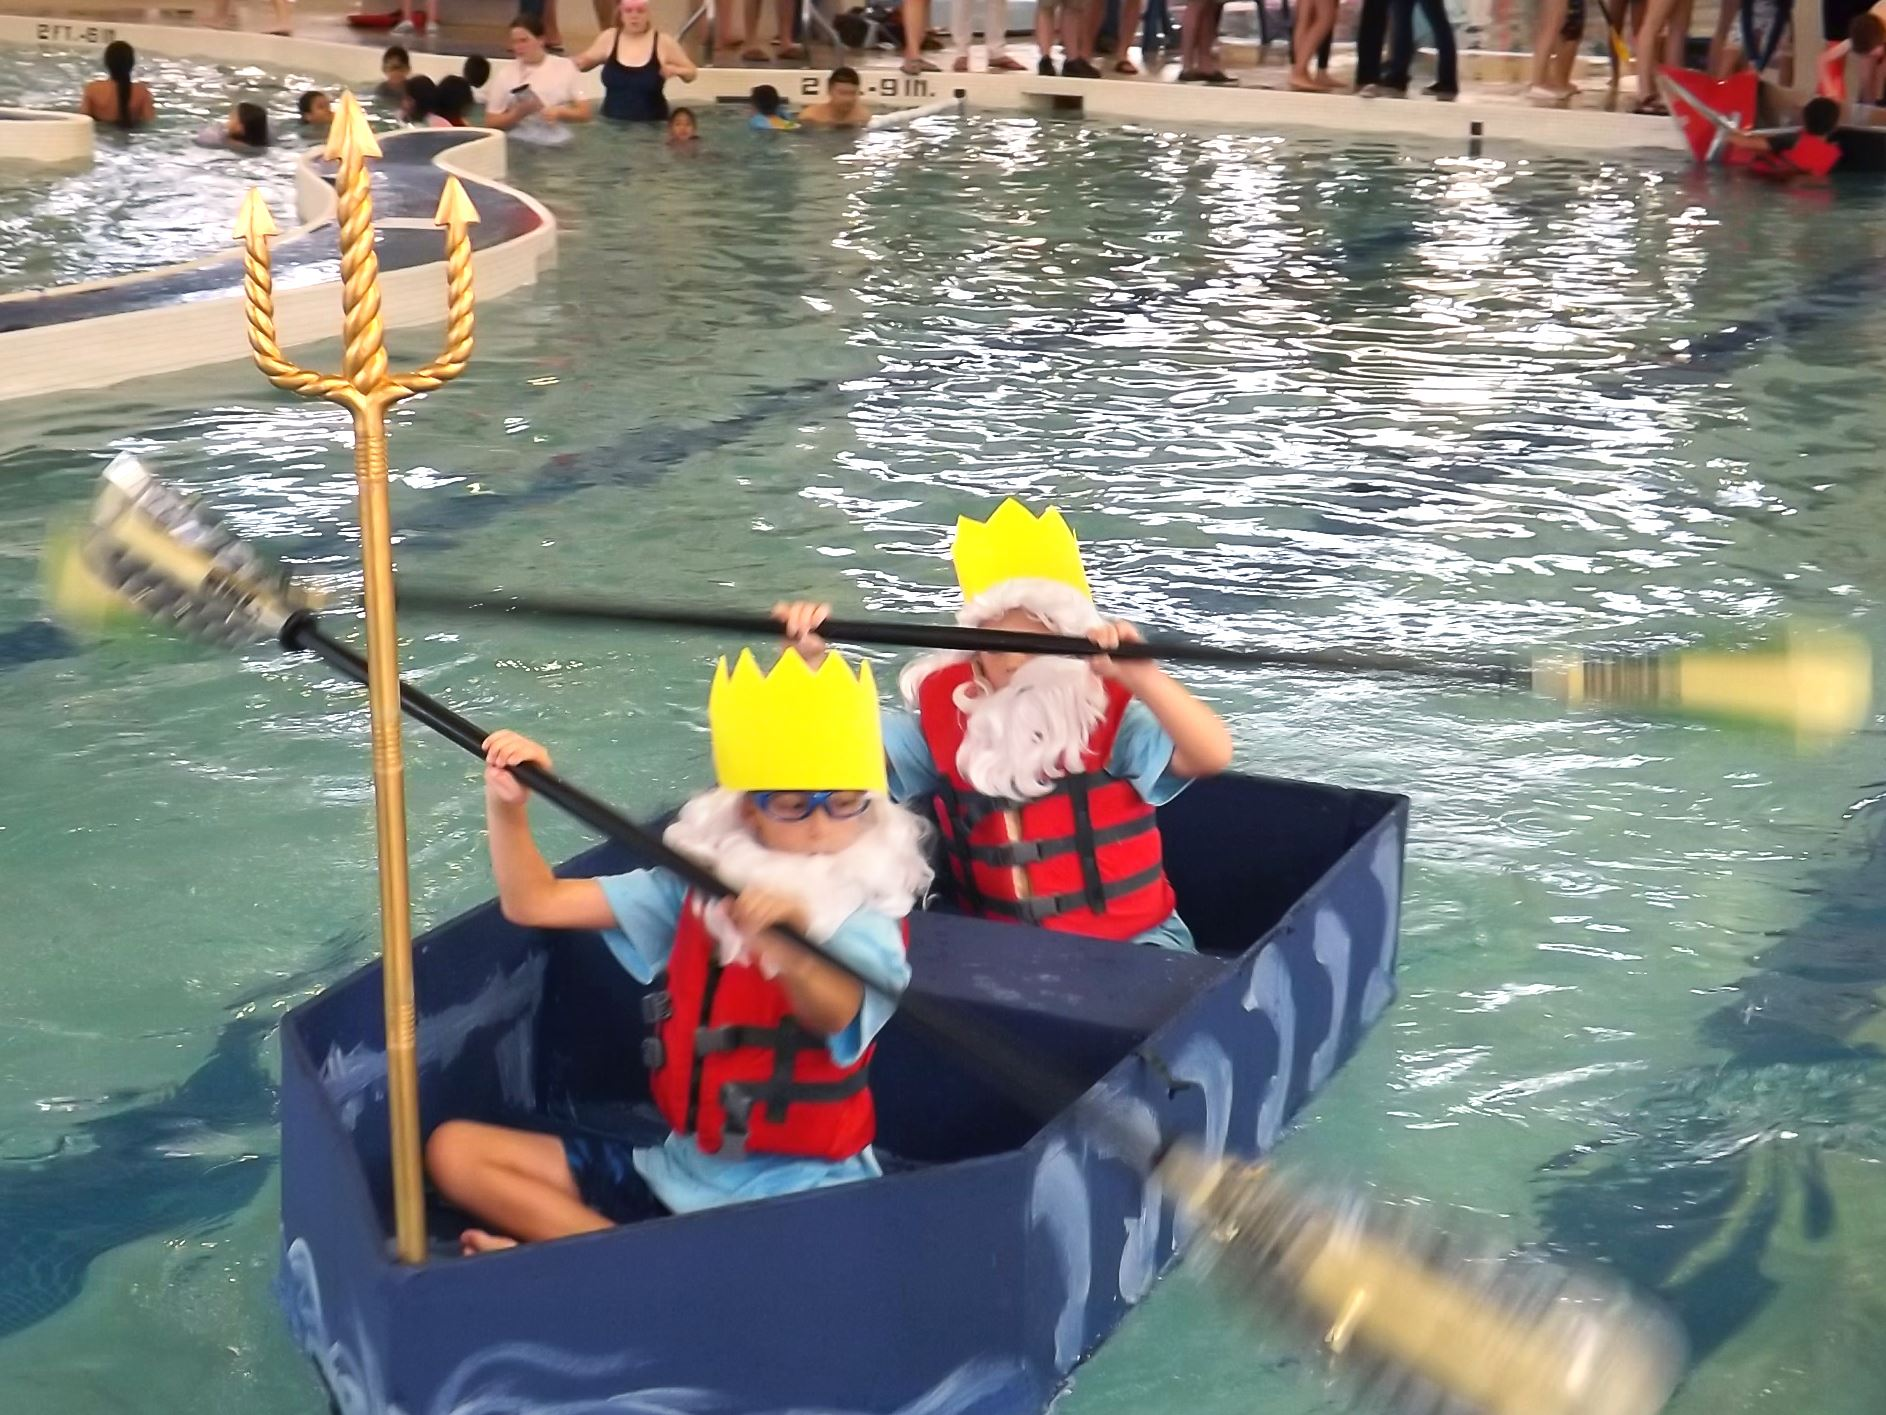 Kids participating in cardboard boat race